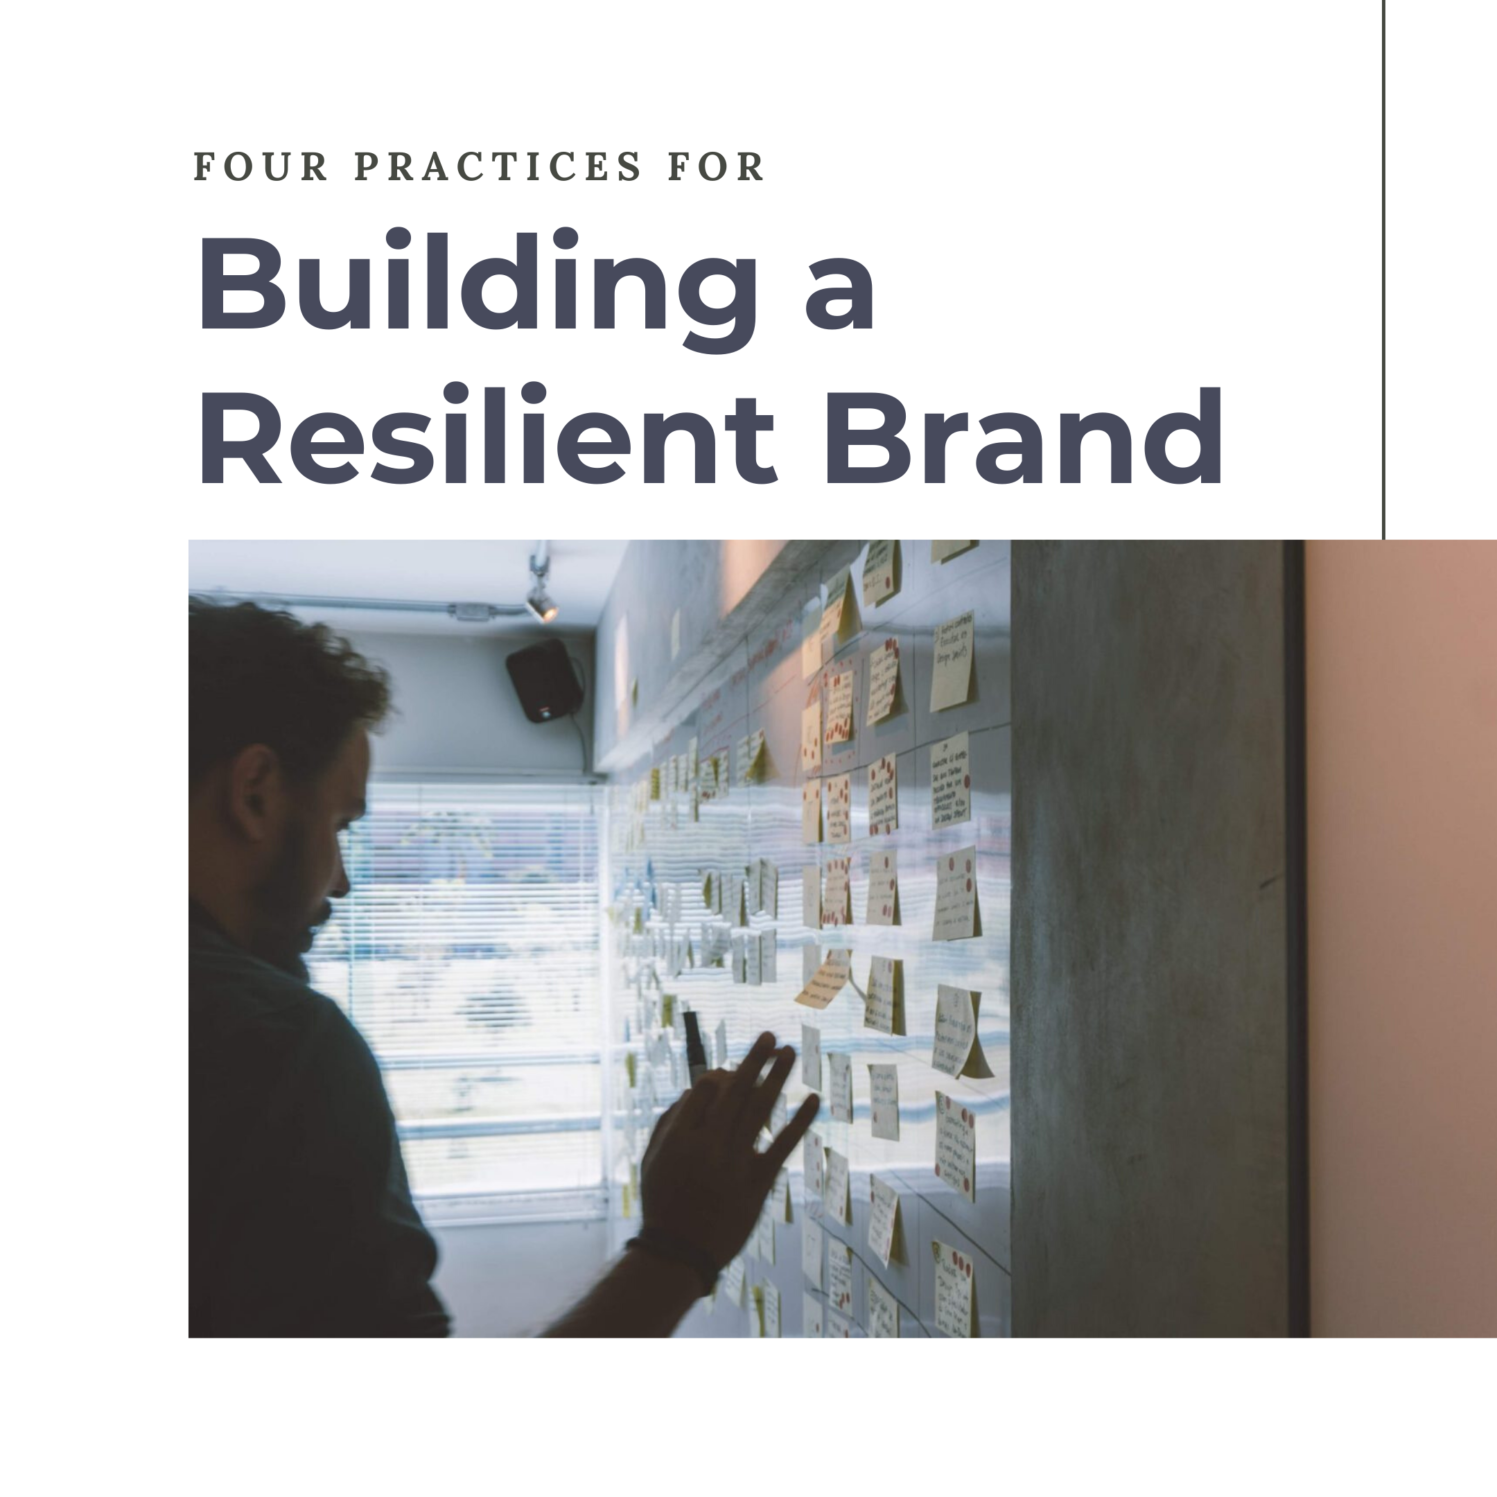 Four Practices for Building a Resilient Brand